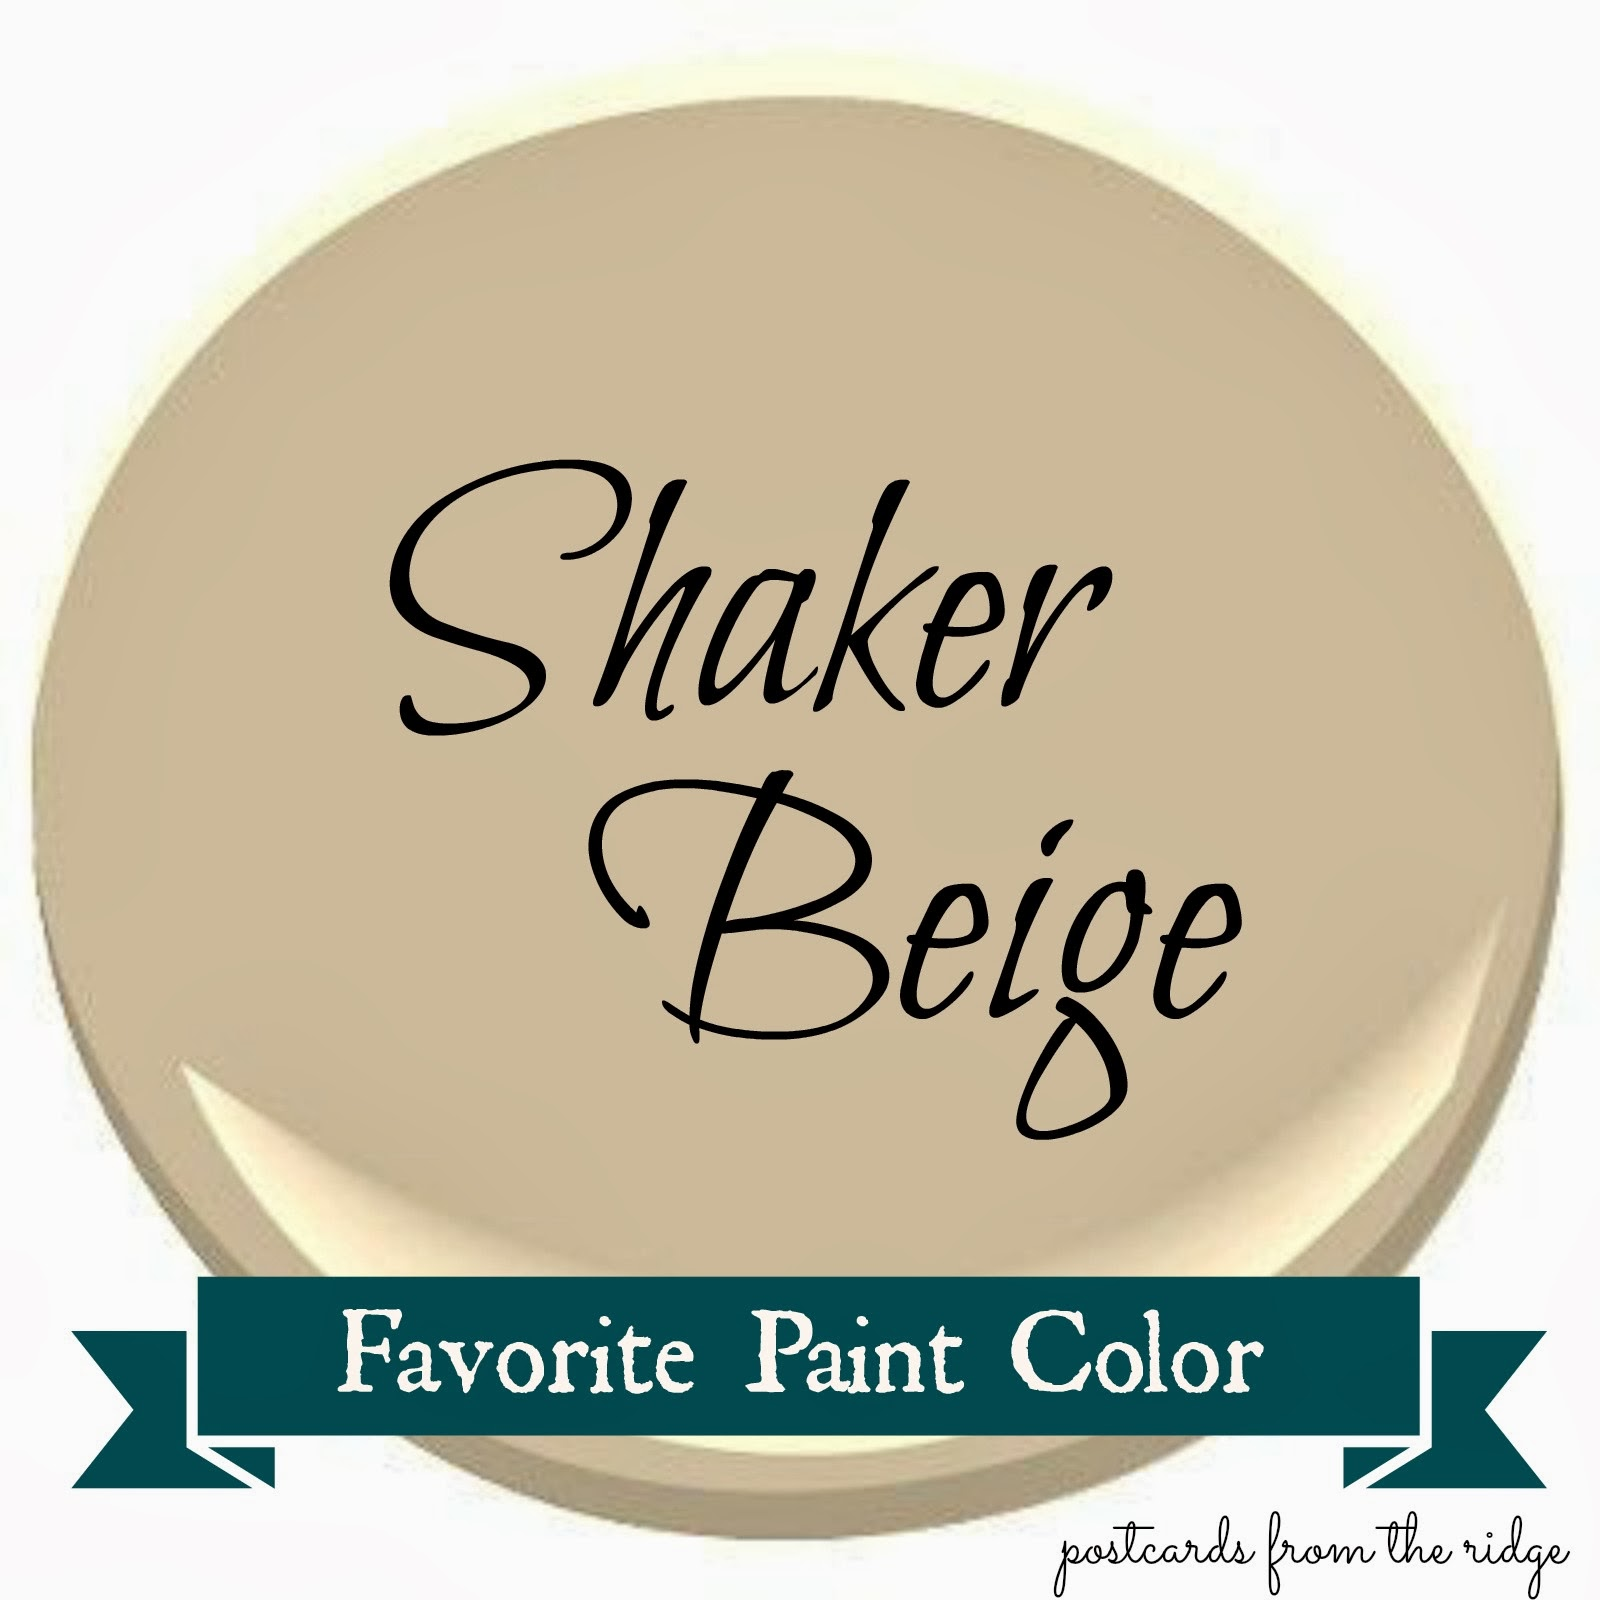 Benjamin moore shaker beige favorite paint color Paint colors that go with beige